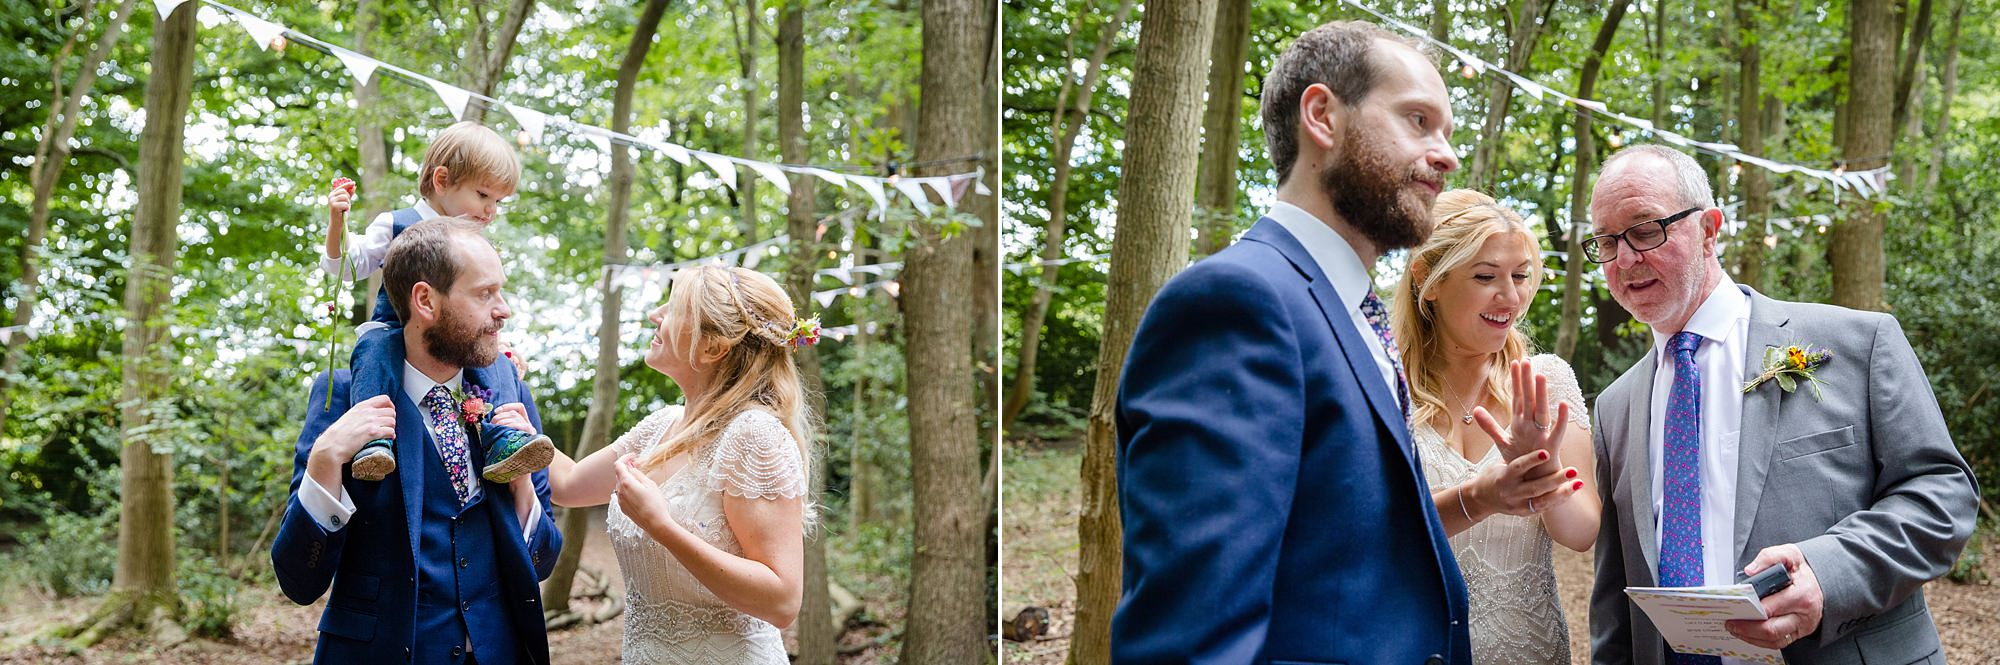 Woodland Weddings Tring bride with family